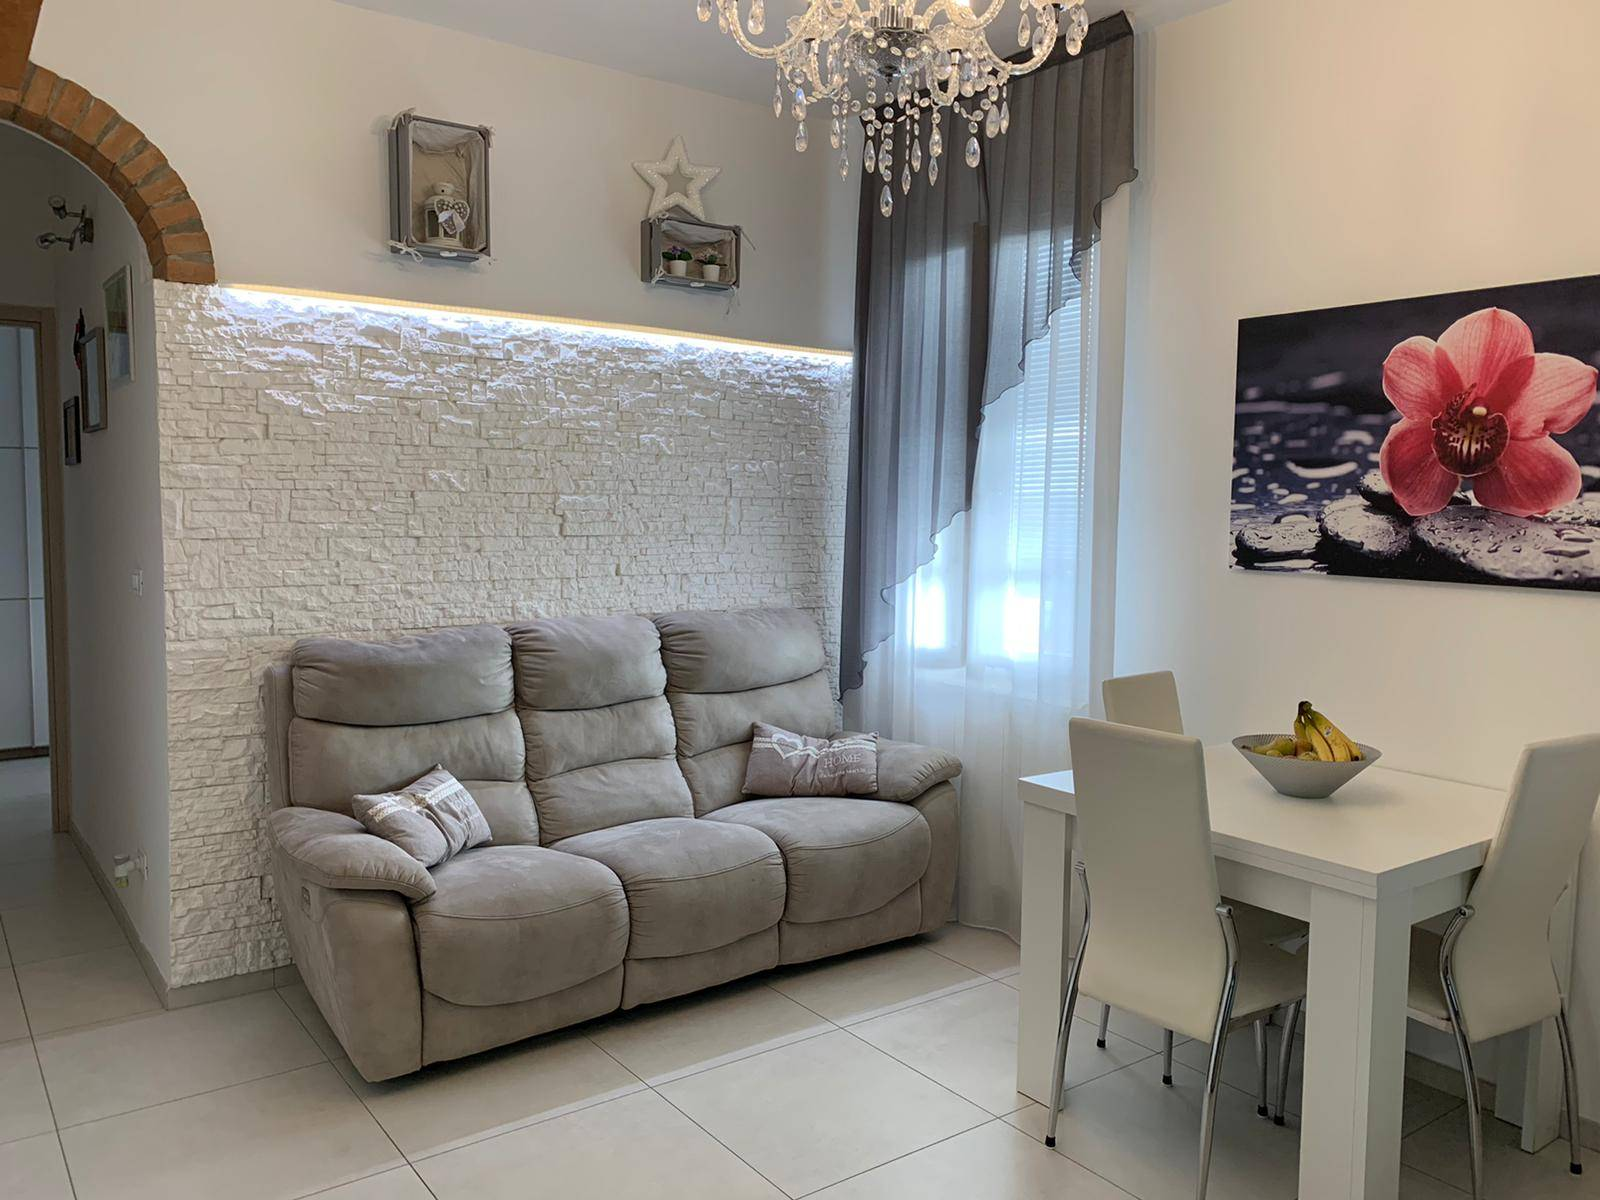 CHIOGGIA CENTRO, CHIOGGIA, Apartment for sale, Restored, Heating Individual heating system, Energetic class: G, placed at 3° on 4, composed by: 3.5